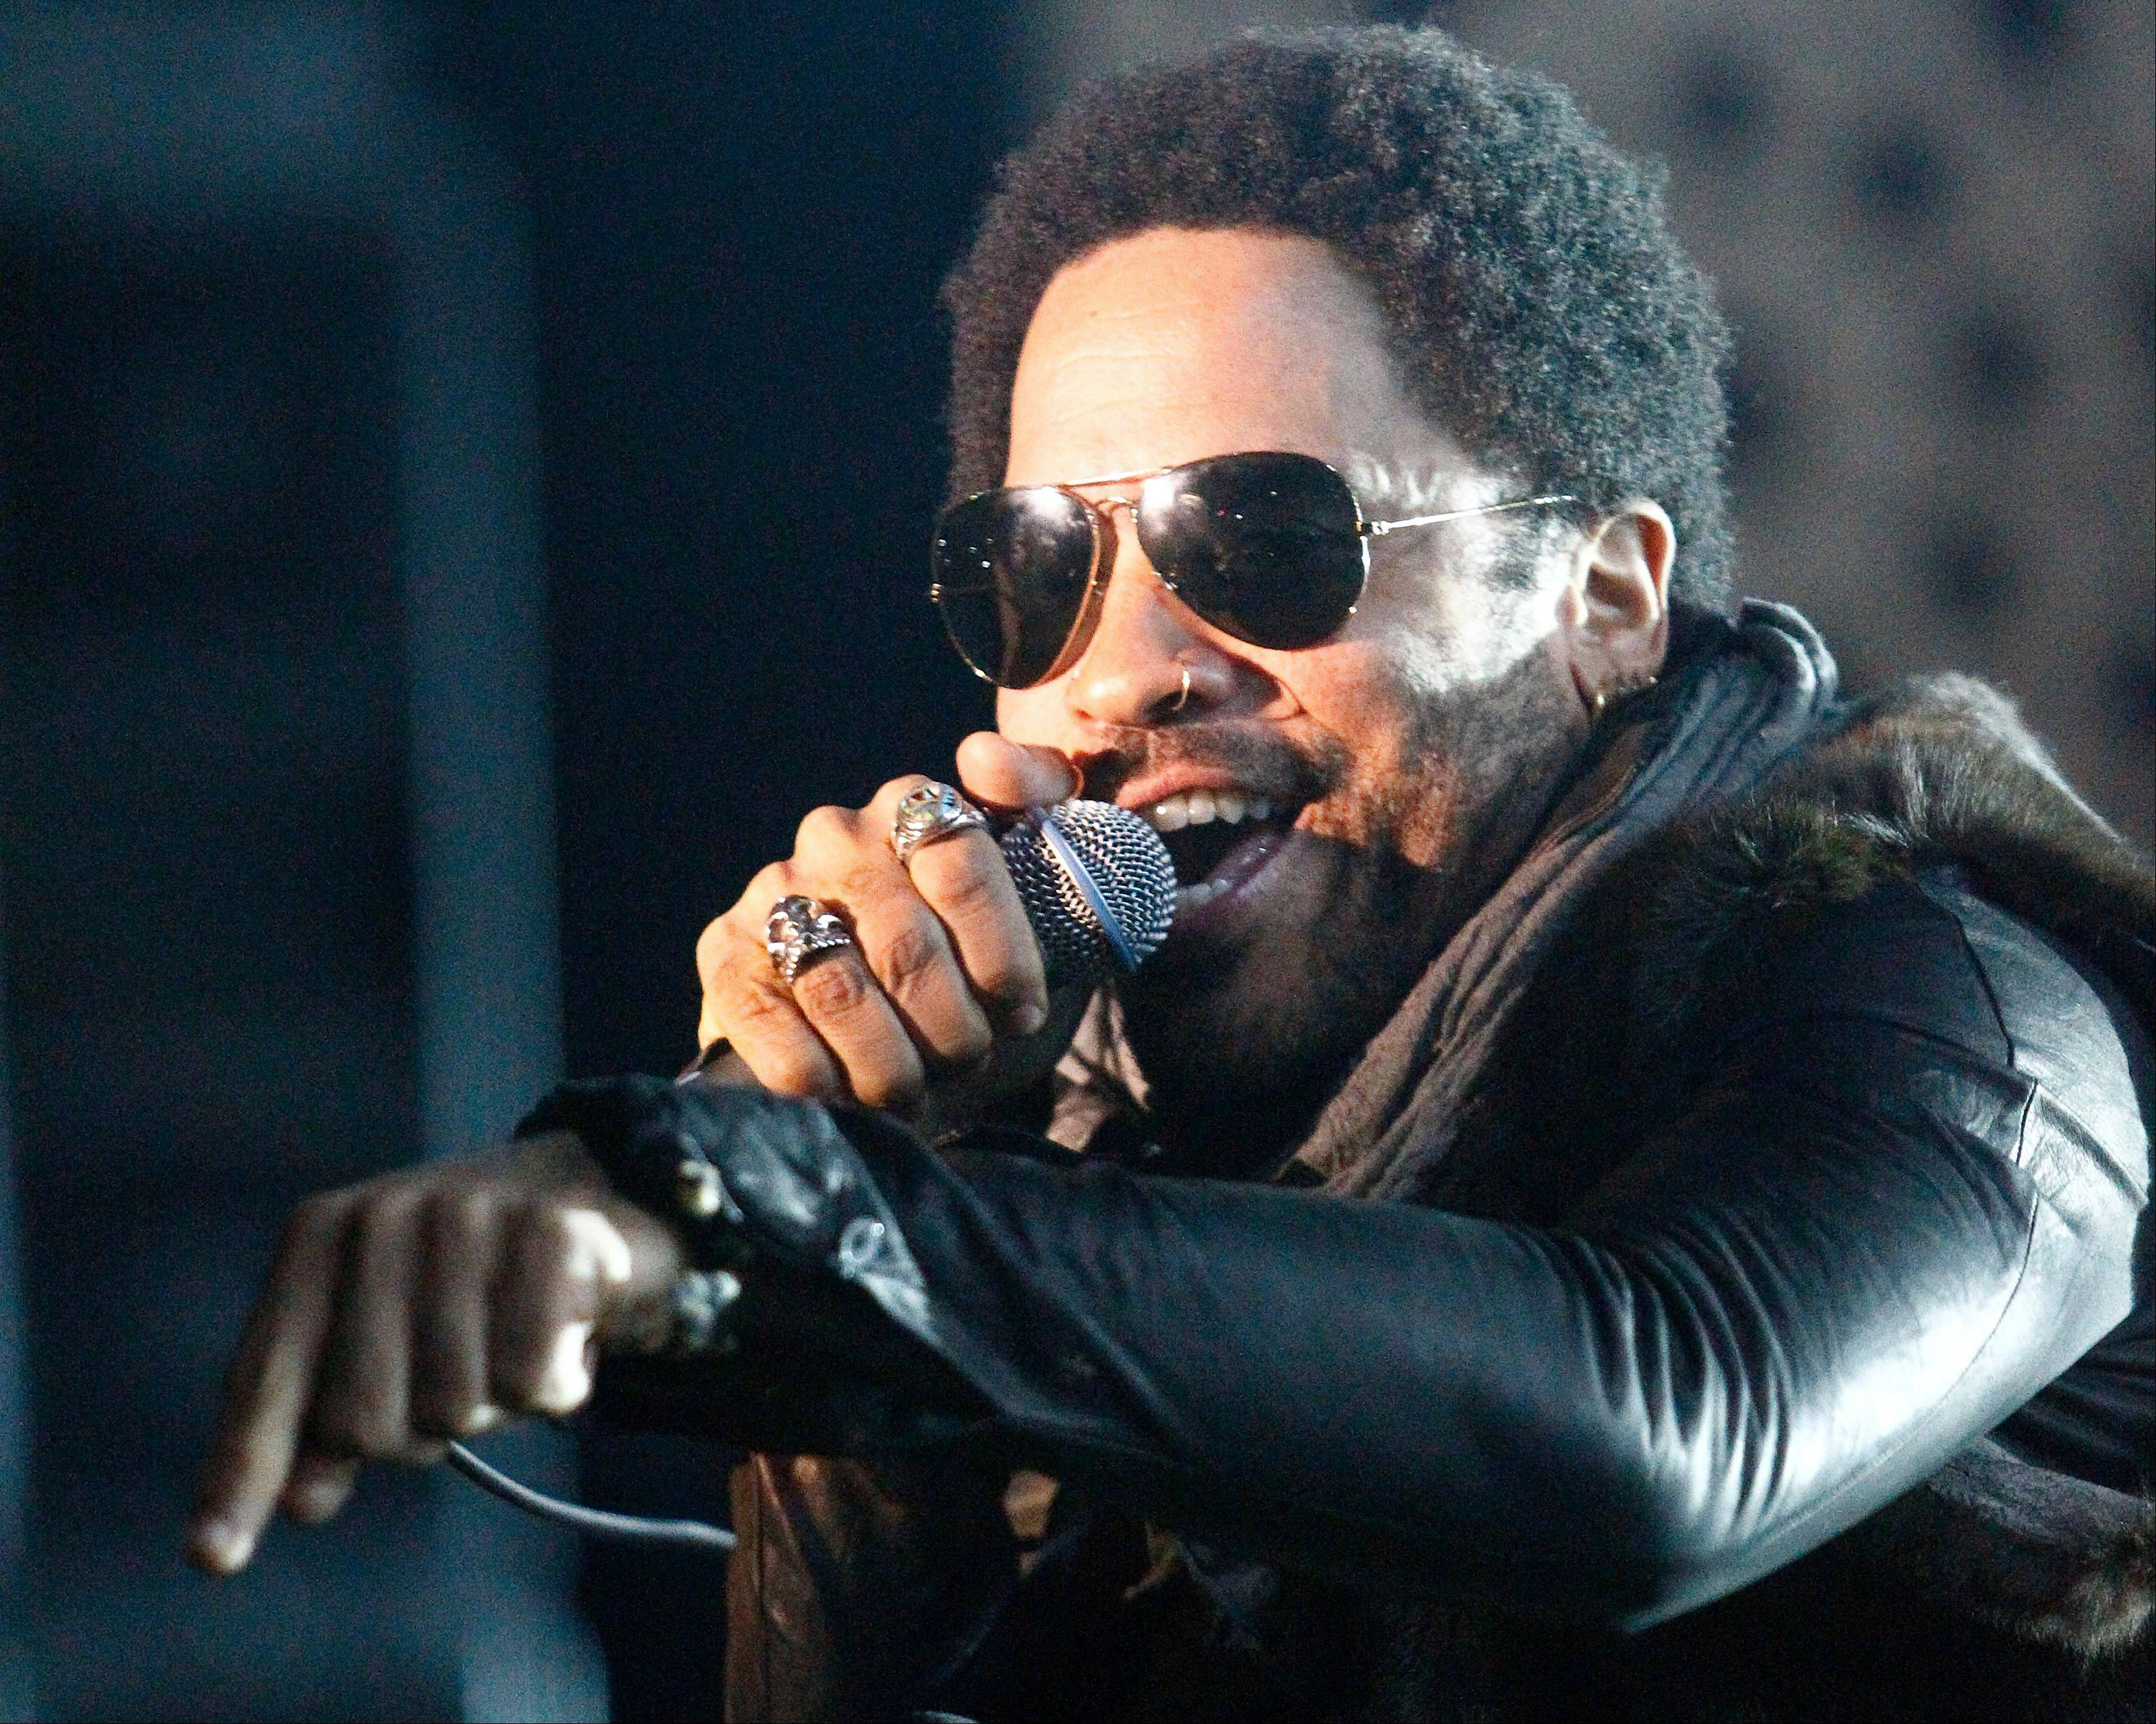 Singer Lenny Kravitz will join co-host Jason Aldean, while rapper Nelly will team with Florida Georgia Line on their crossover hit �Cruise� during Wednesday night�s CMT Music Awards show.